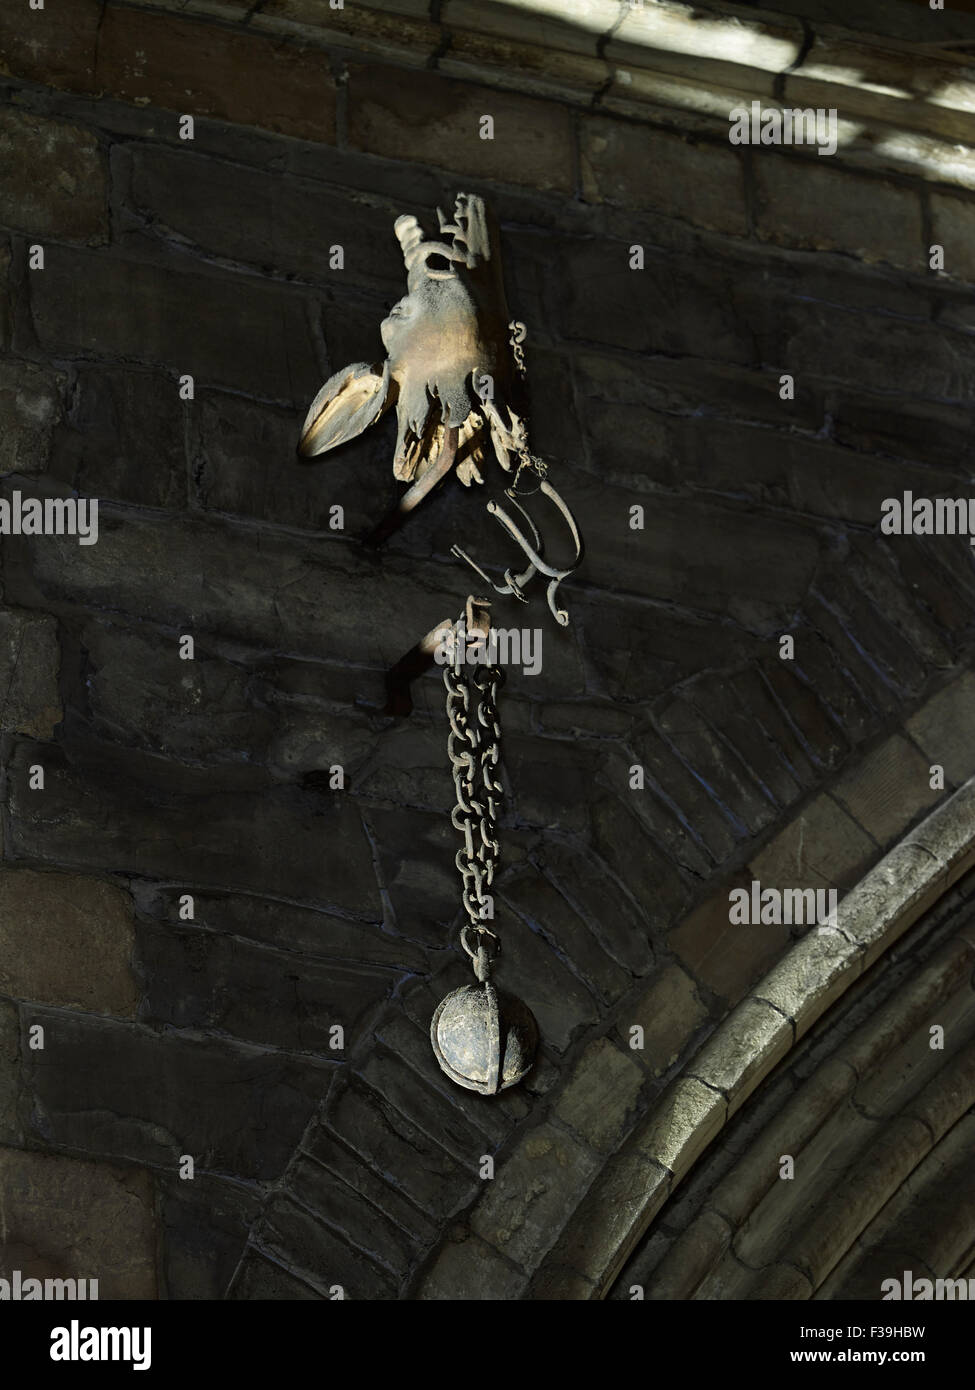 St Patrick's Cathedral Dublin cannonball - Stock Image